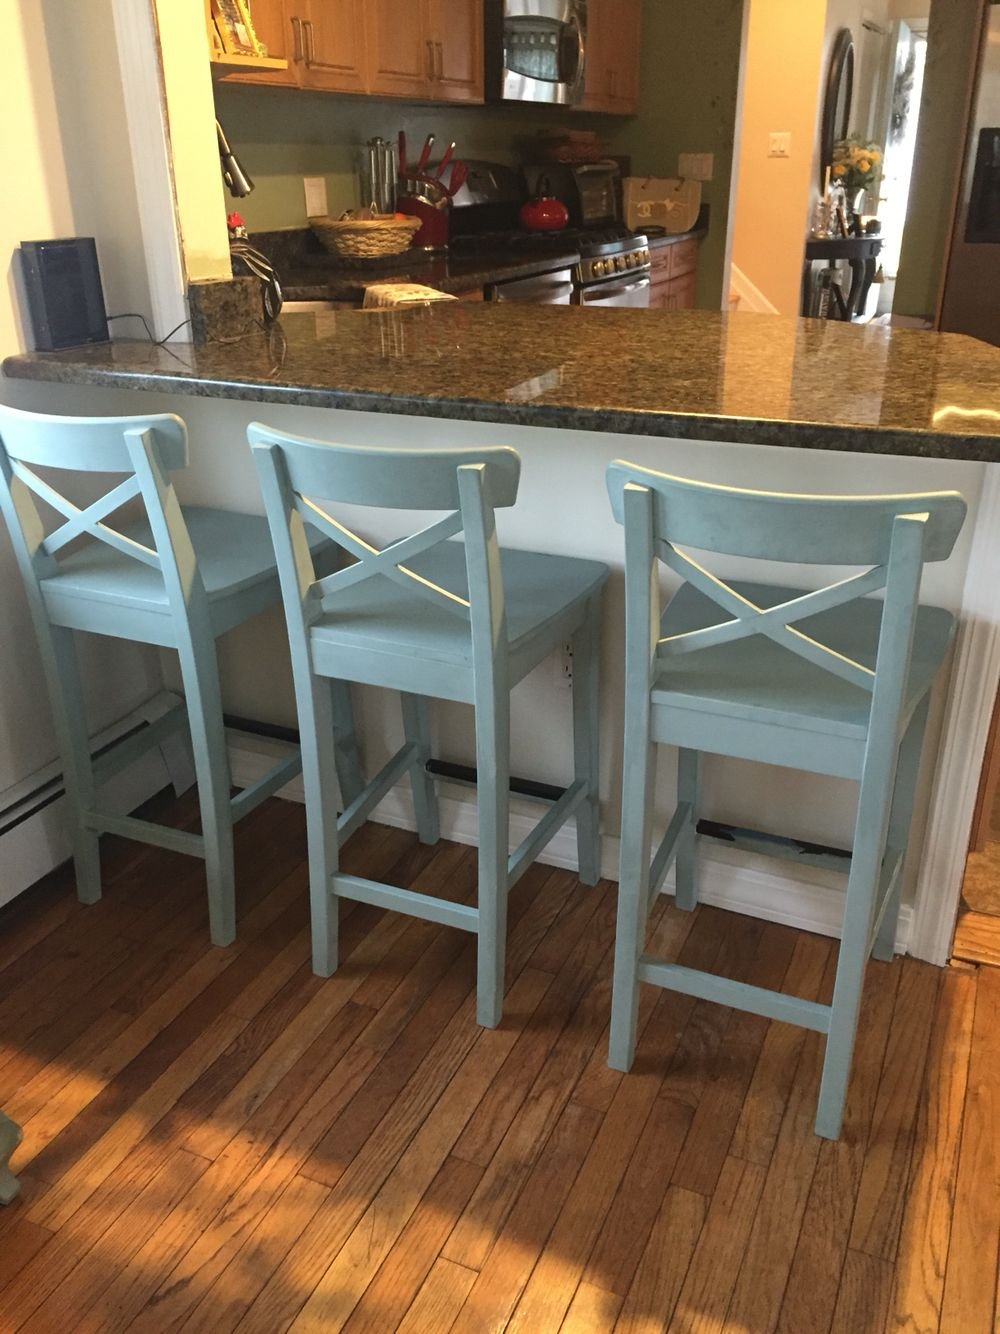 Ikea Counter Stool Painted Annie Sloan Chalk Paint Ideas Kitchen Counter Stools